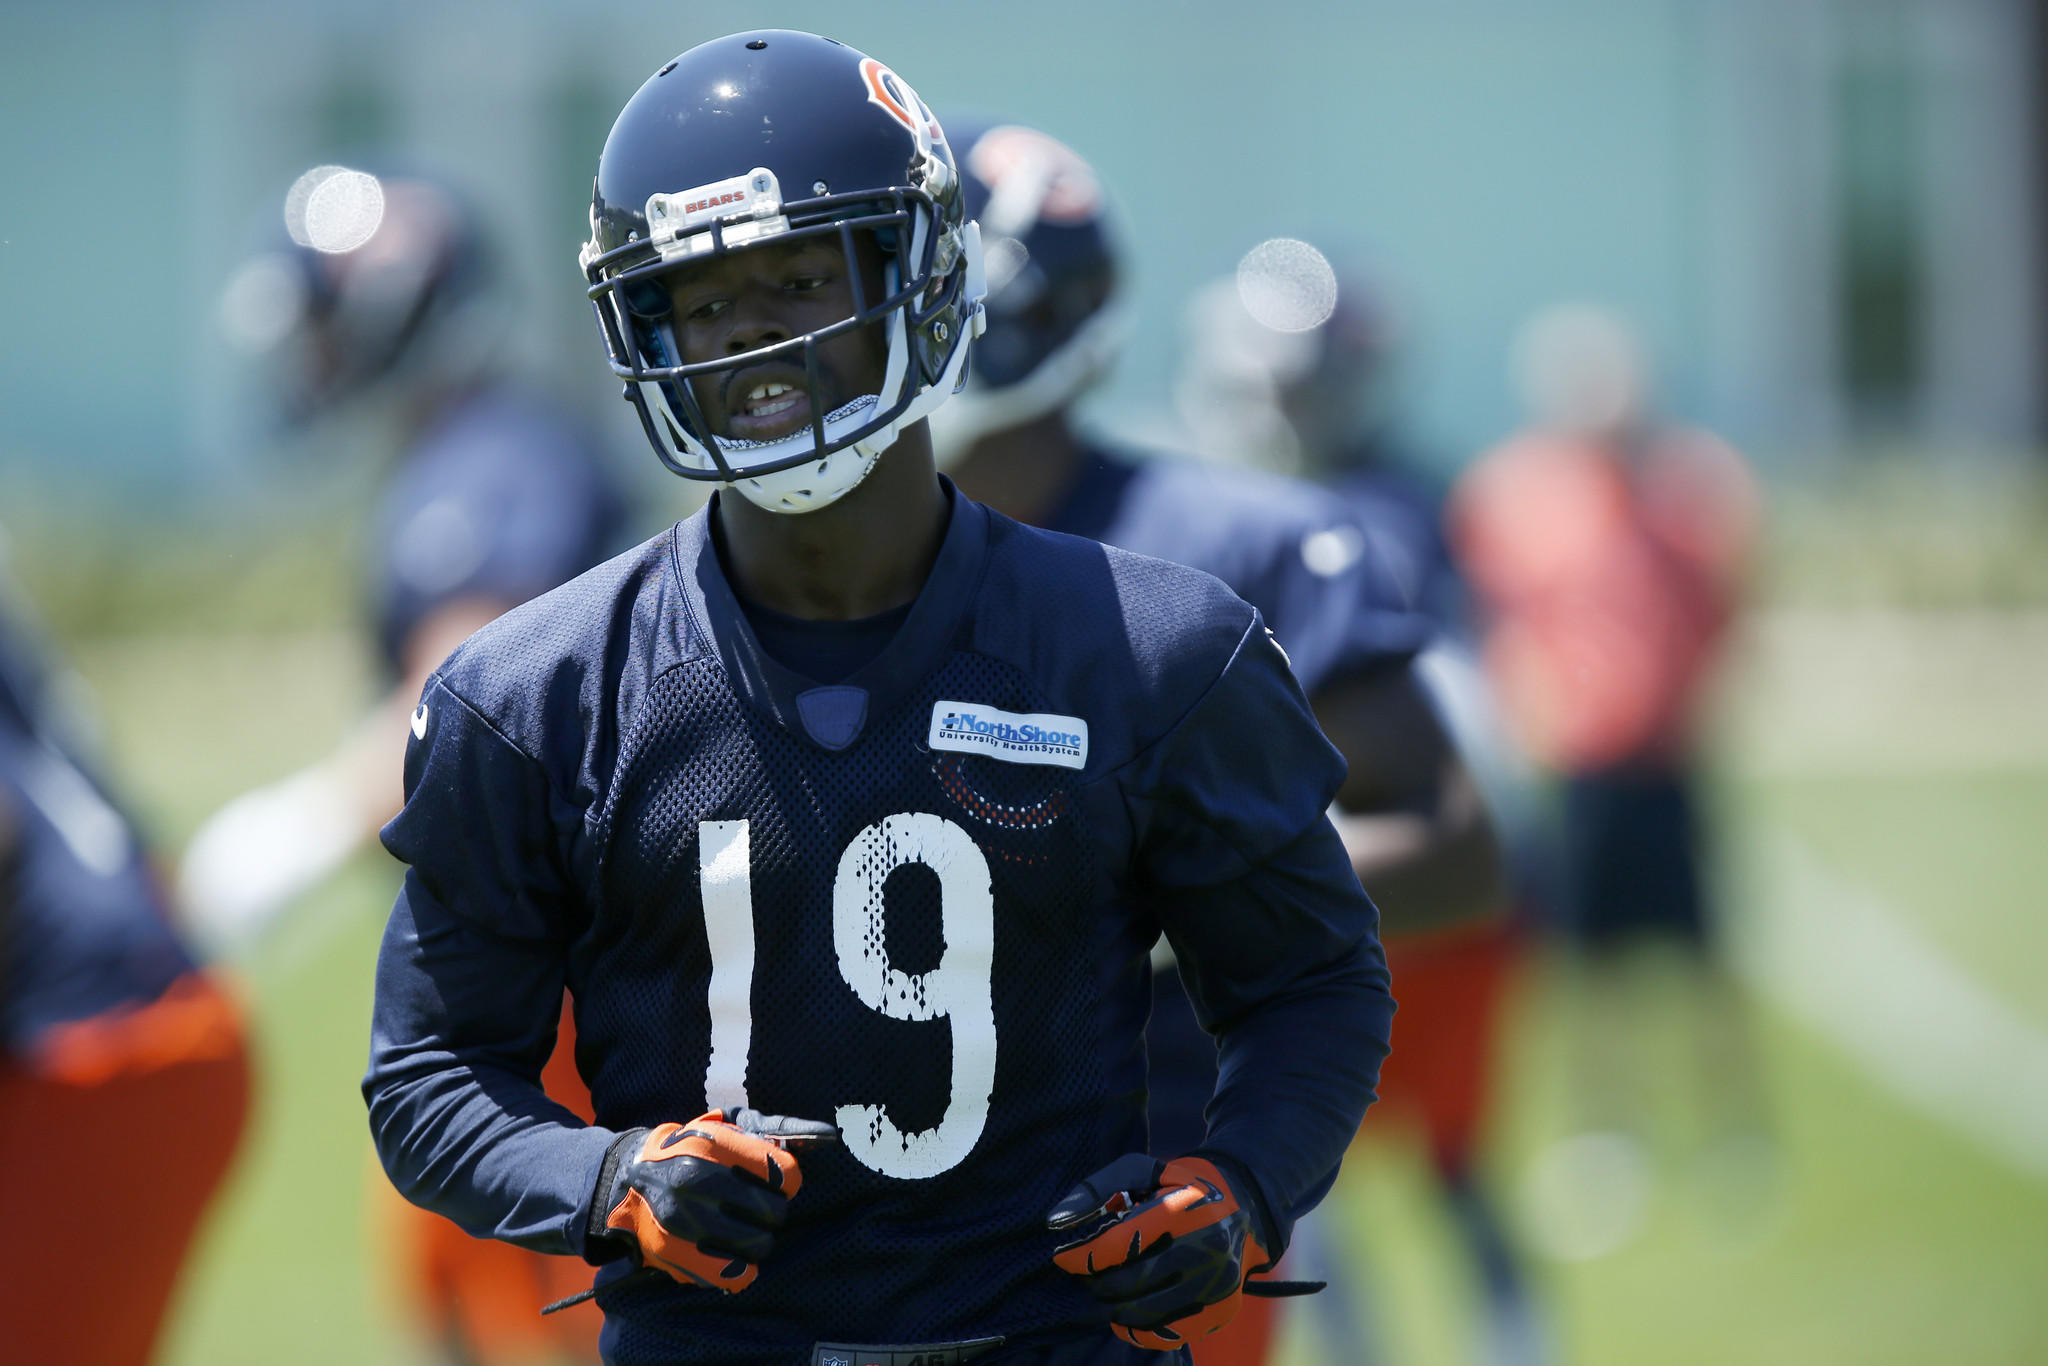 Bears wide receiver Josh Morgan during OTA practice at Halas Hall in Lake Forest.